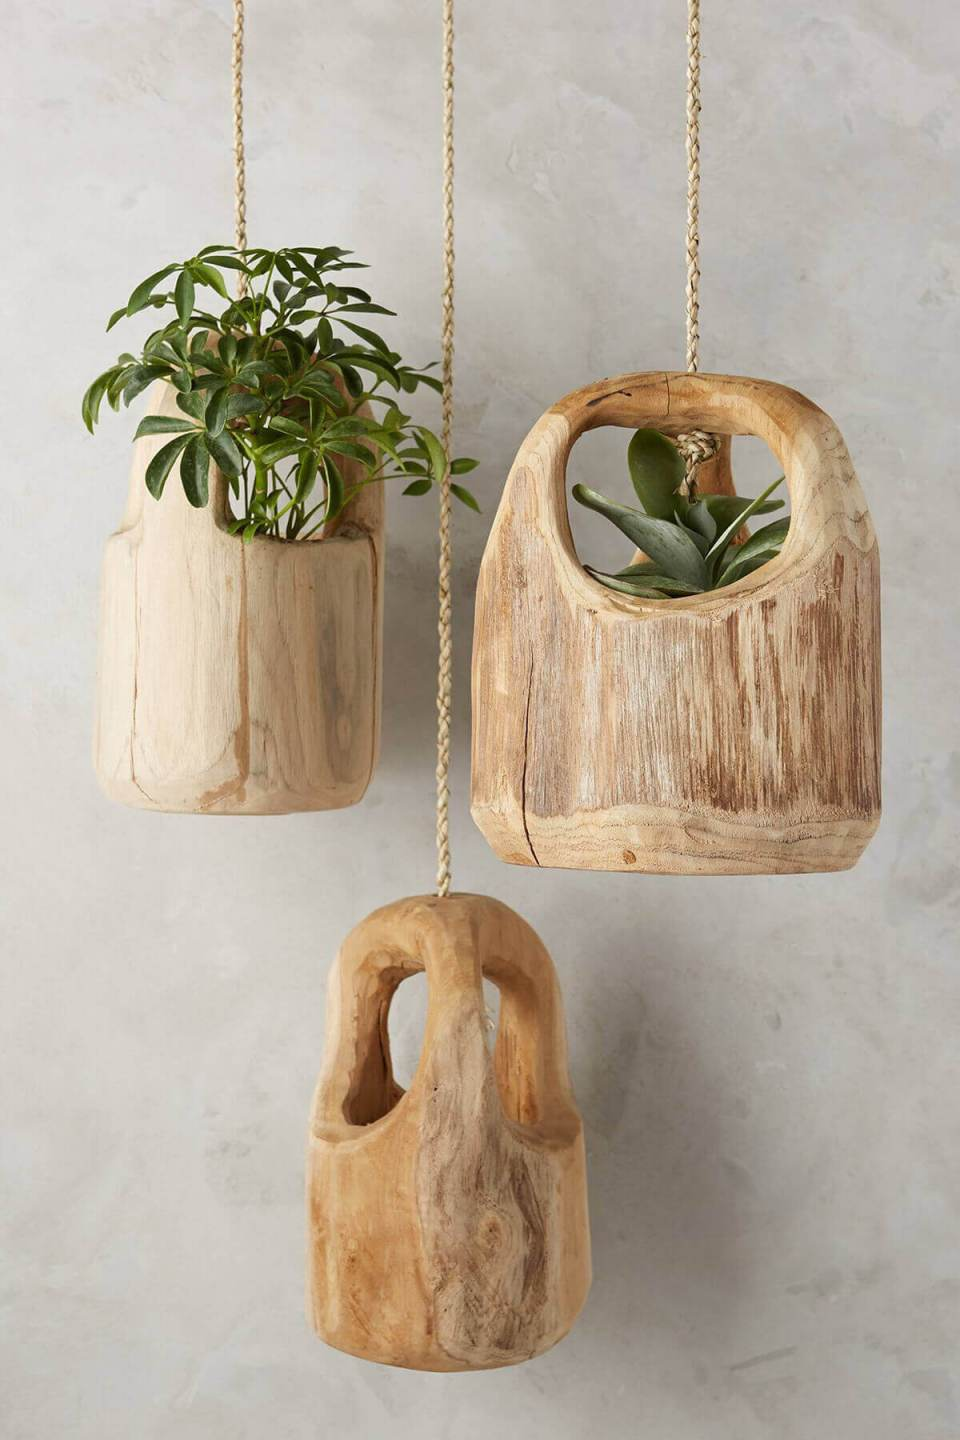 Rustic Carved Wooden Hanging Planters | DIY Outdoor Hanging Planter Ideas | Plant Pot Design Ideas